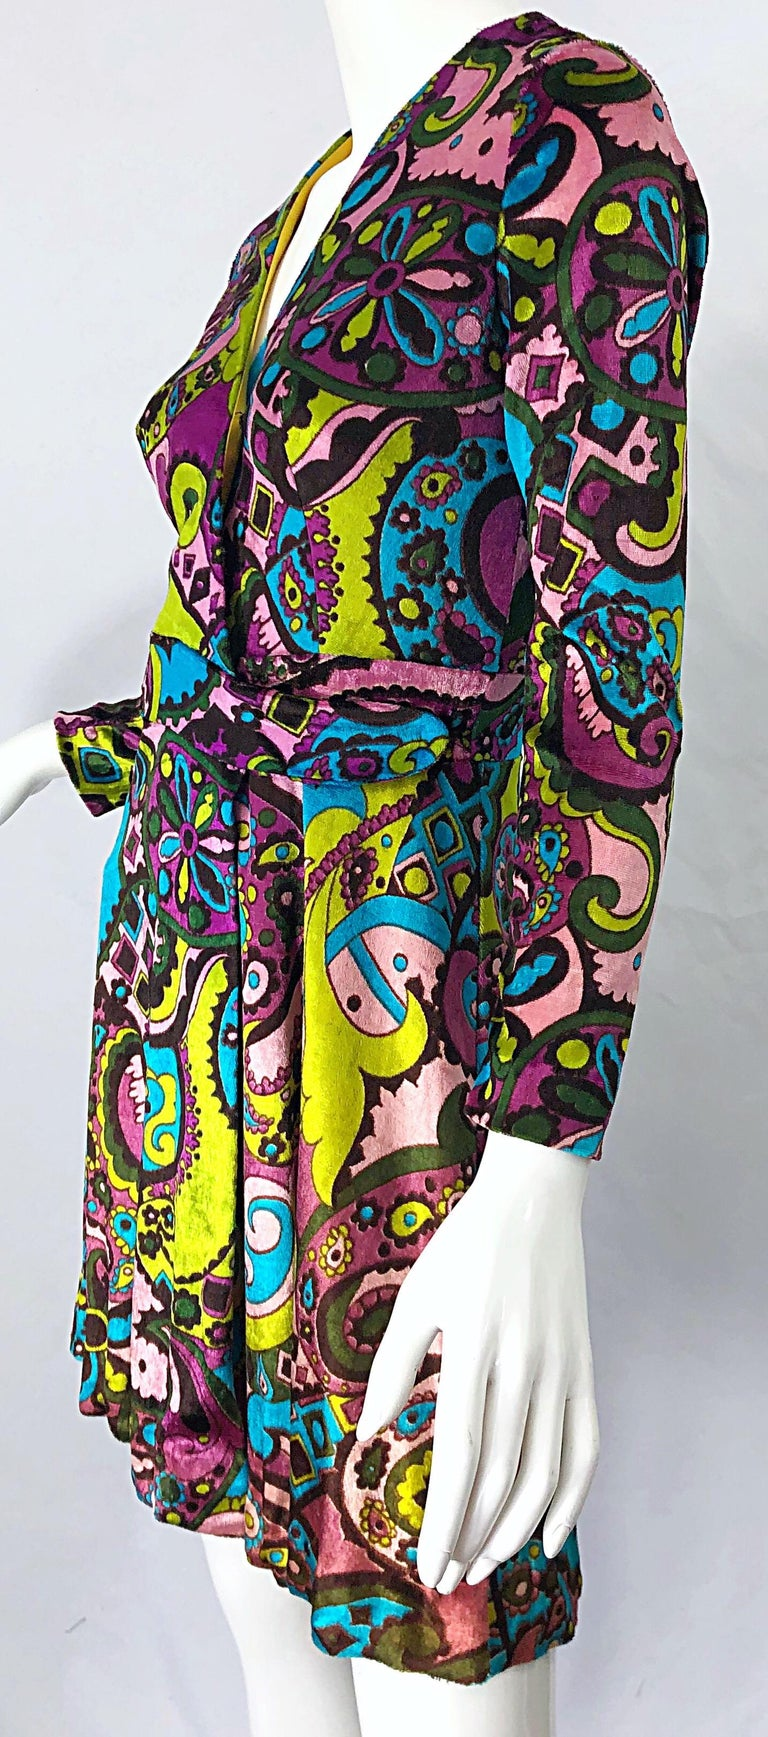 1970s Psychedelic Paisley Print Colorful Velour Vintage 70s Wrap Dress For Sale 5